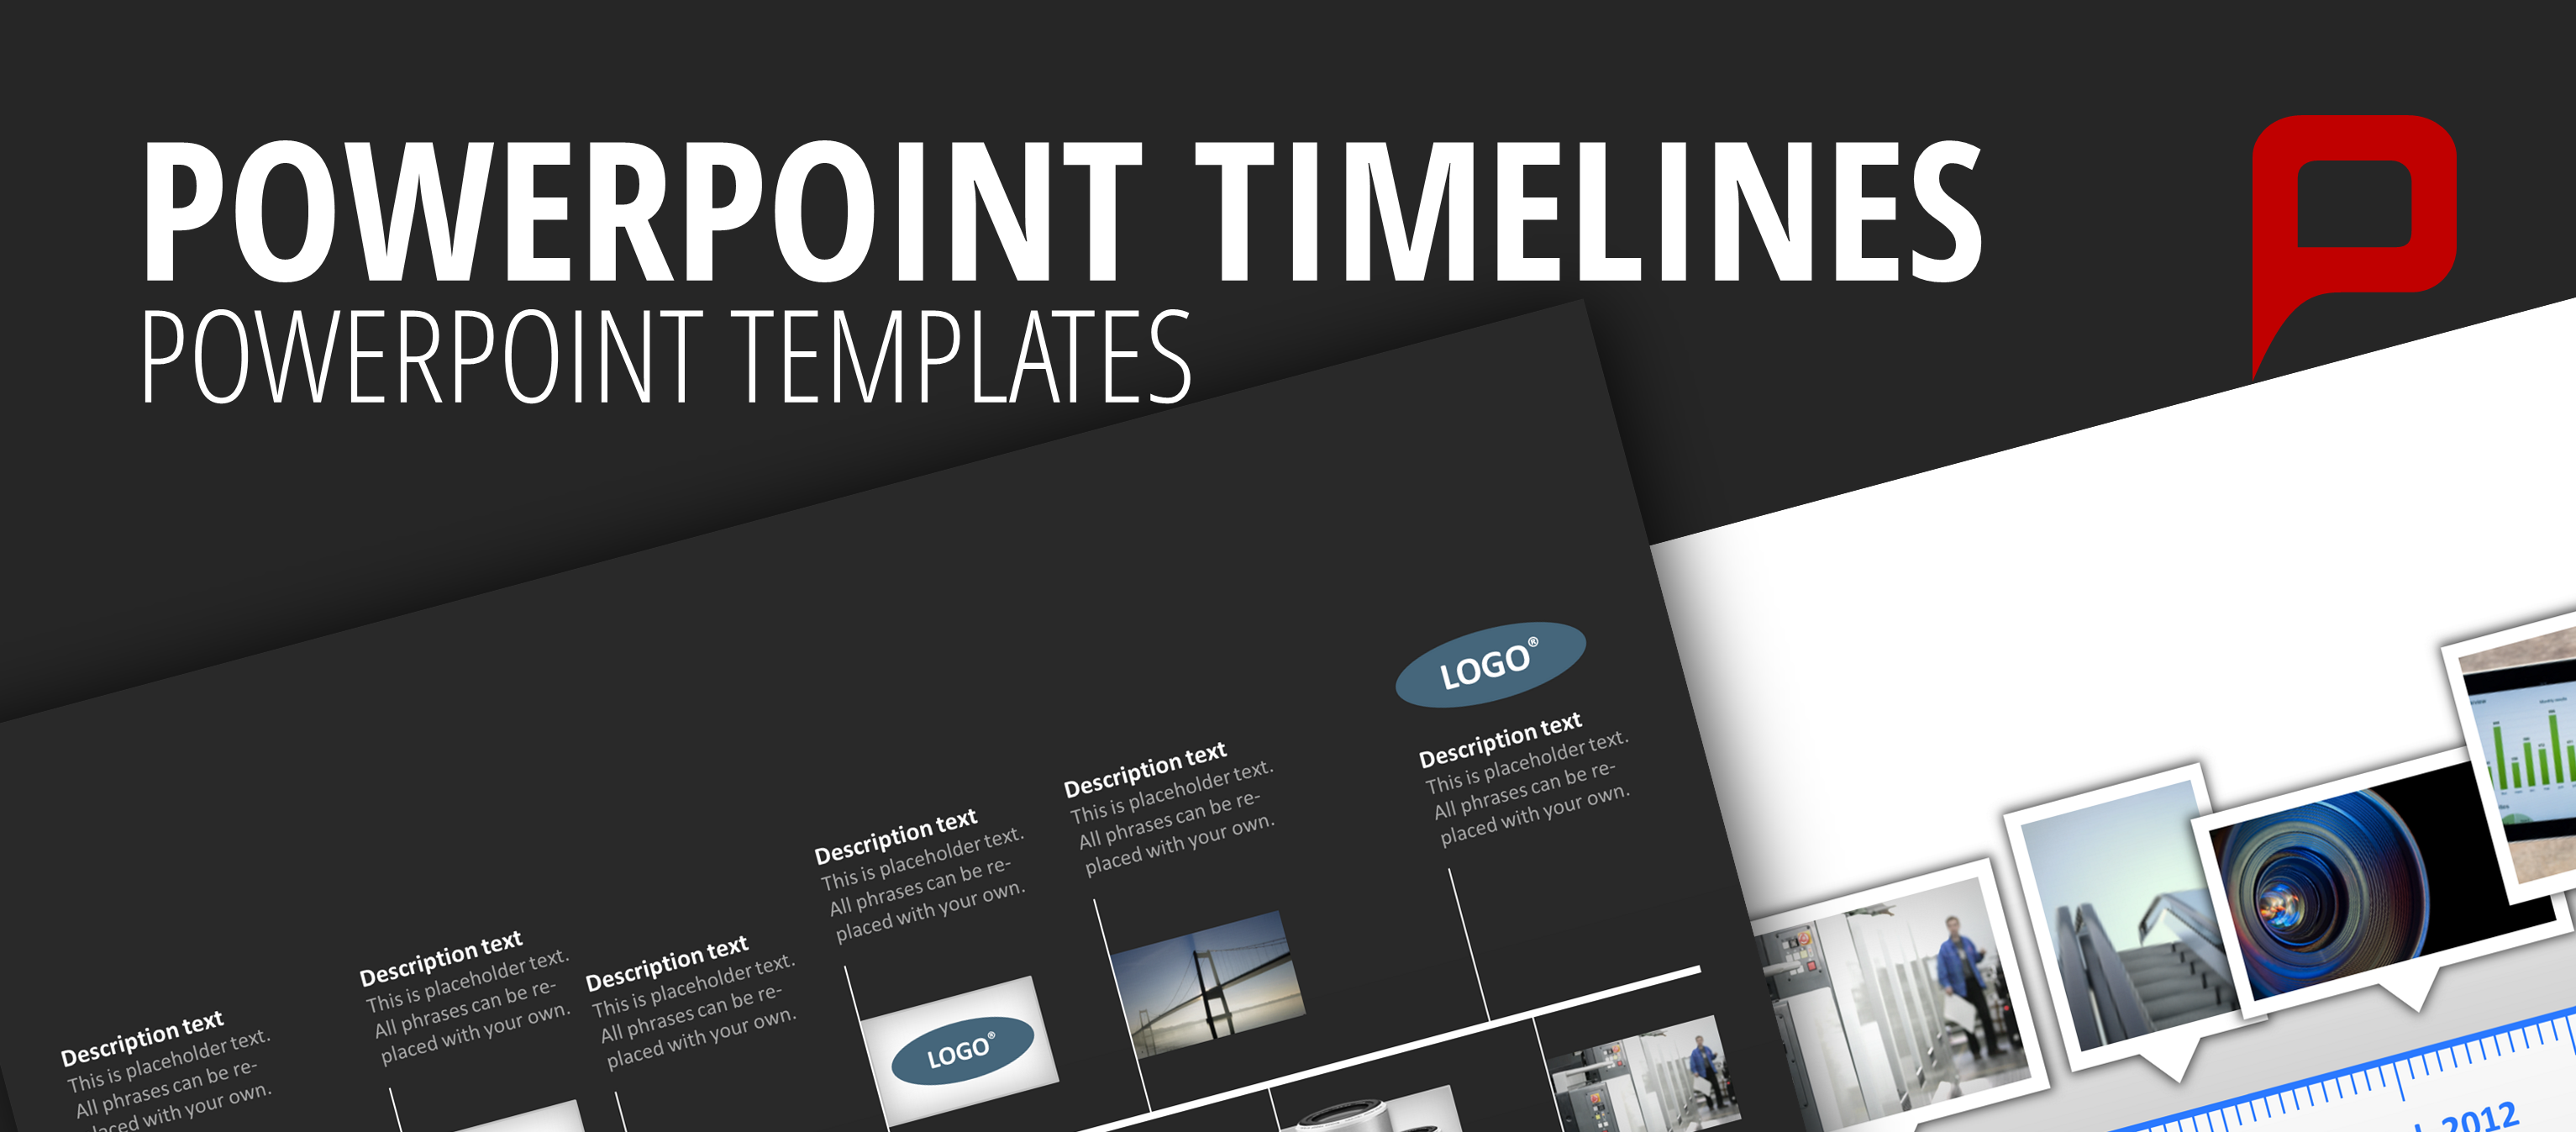 PowerPoint Templates Archives | PresentationLoad Blog